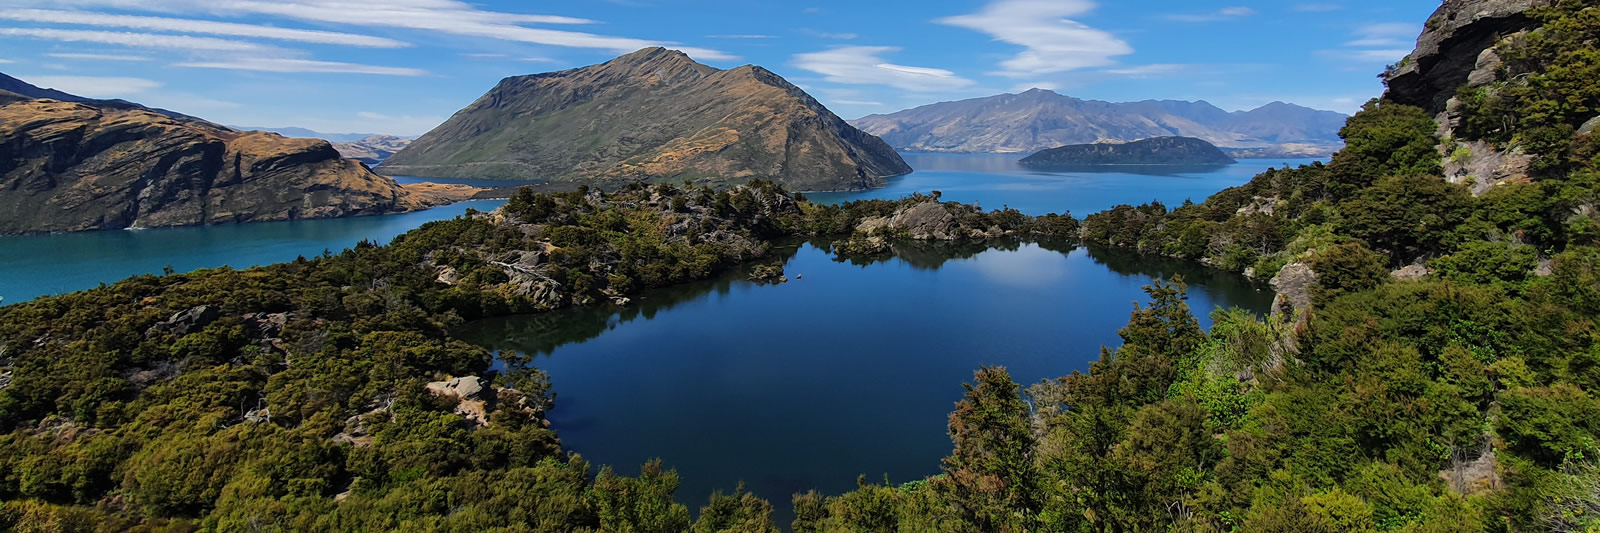 Mou Waho Island walk on Eco Wanaka Adventures lake cruise